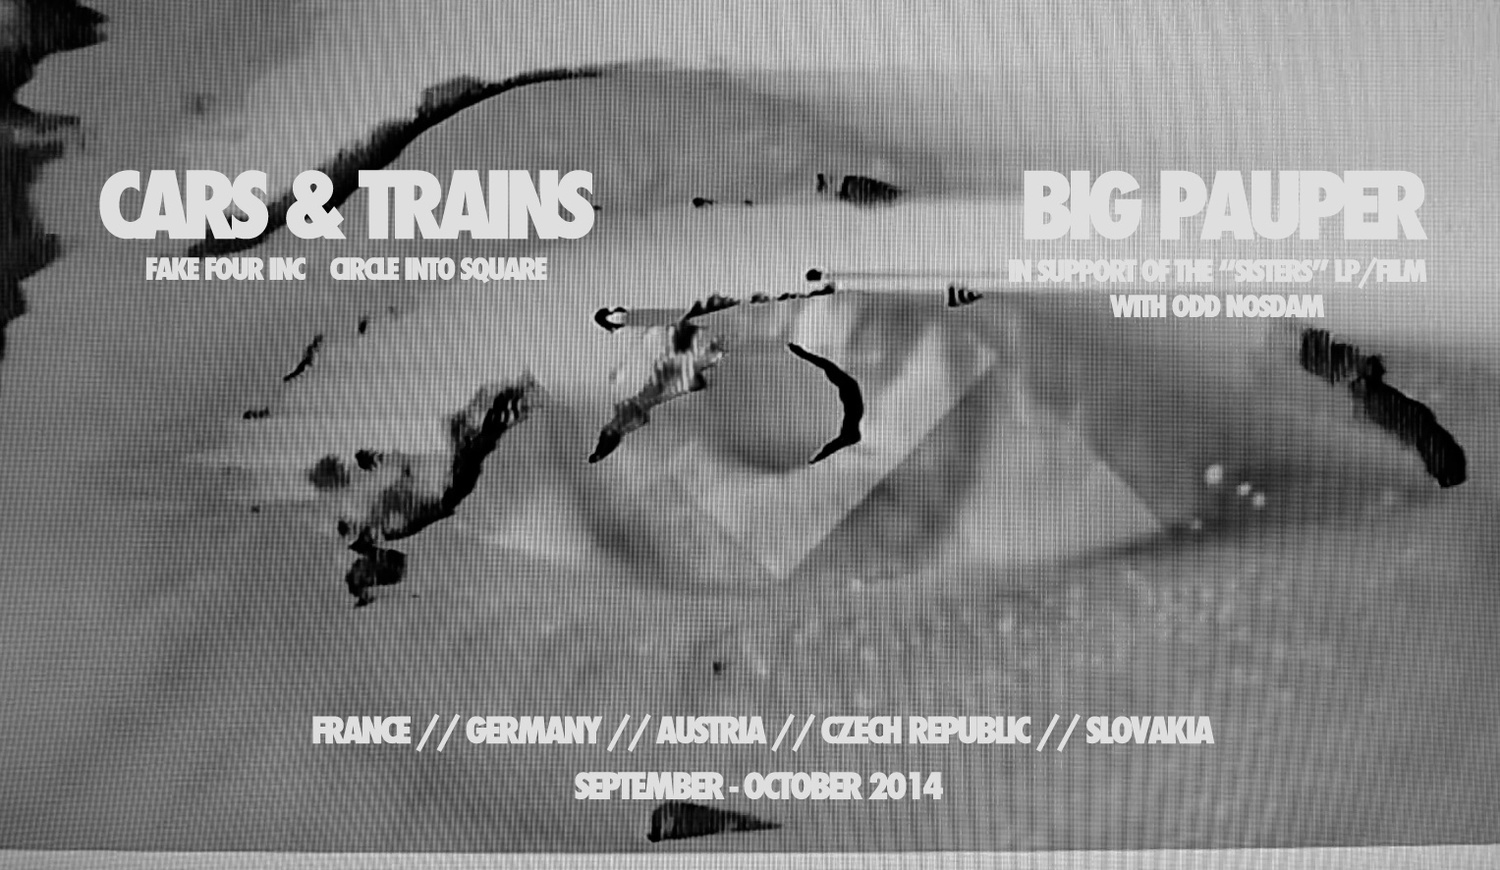 September/October Europe Tour Dates w/ Big Pauper